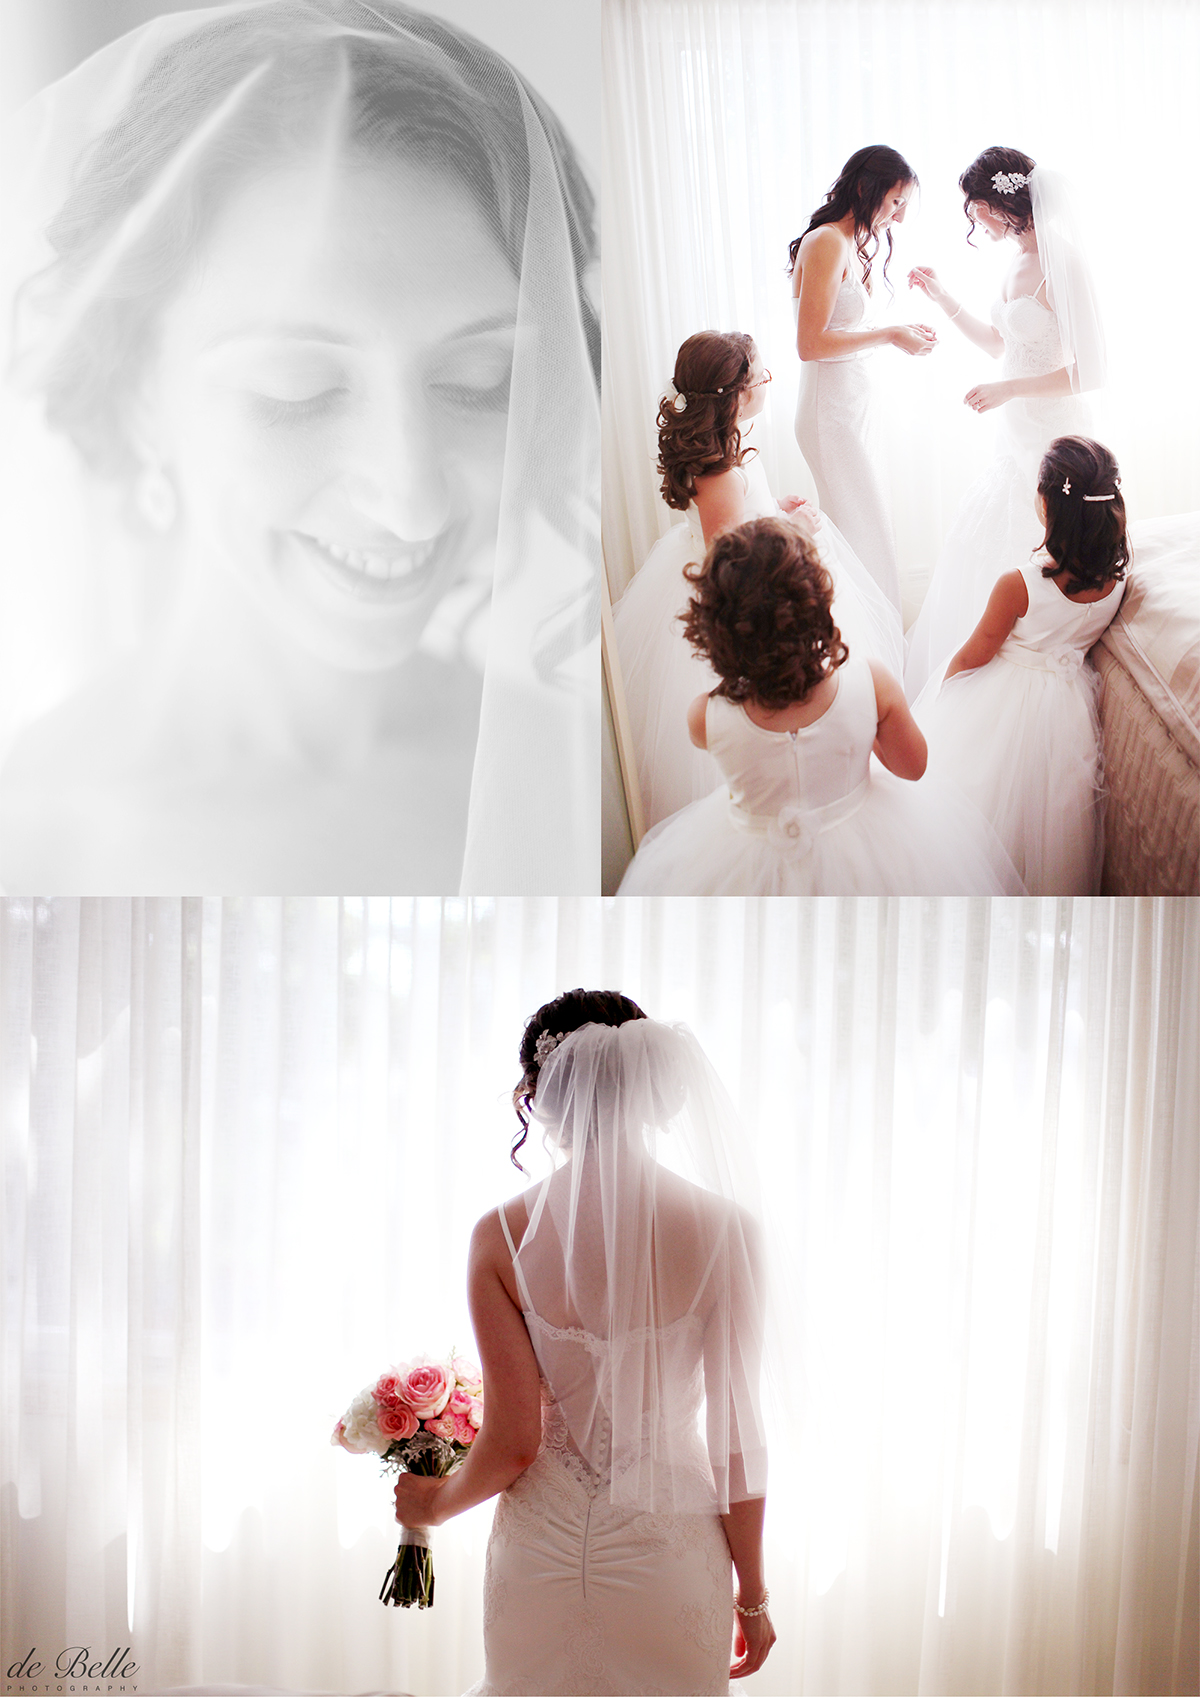 Montreal-Wedding-Photographer-Debelle-SD2